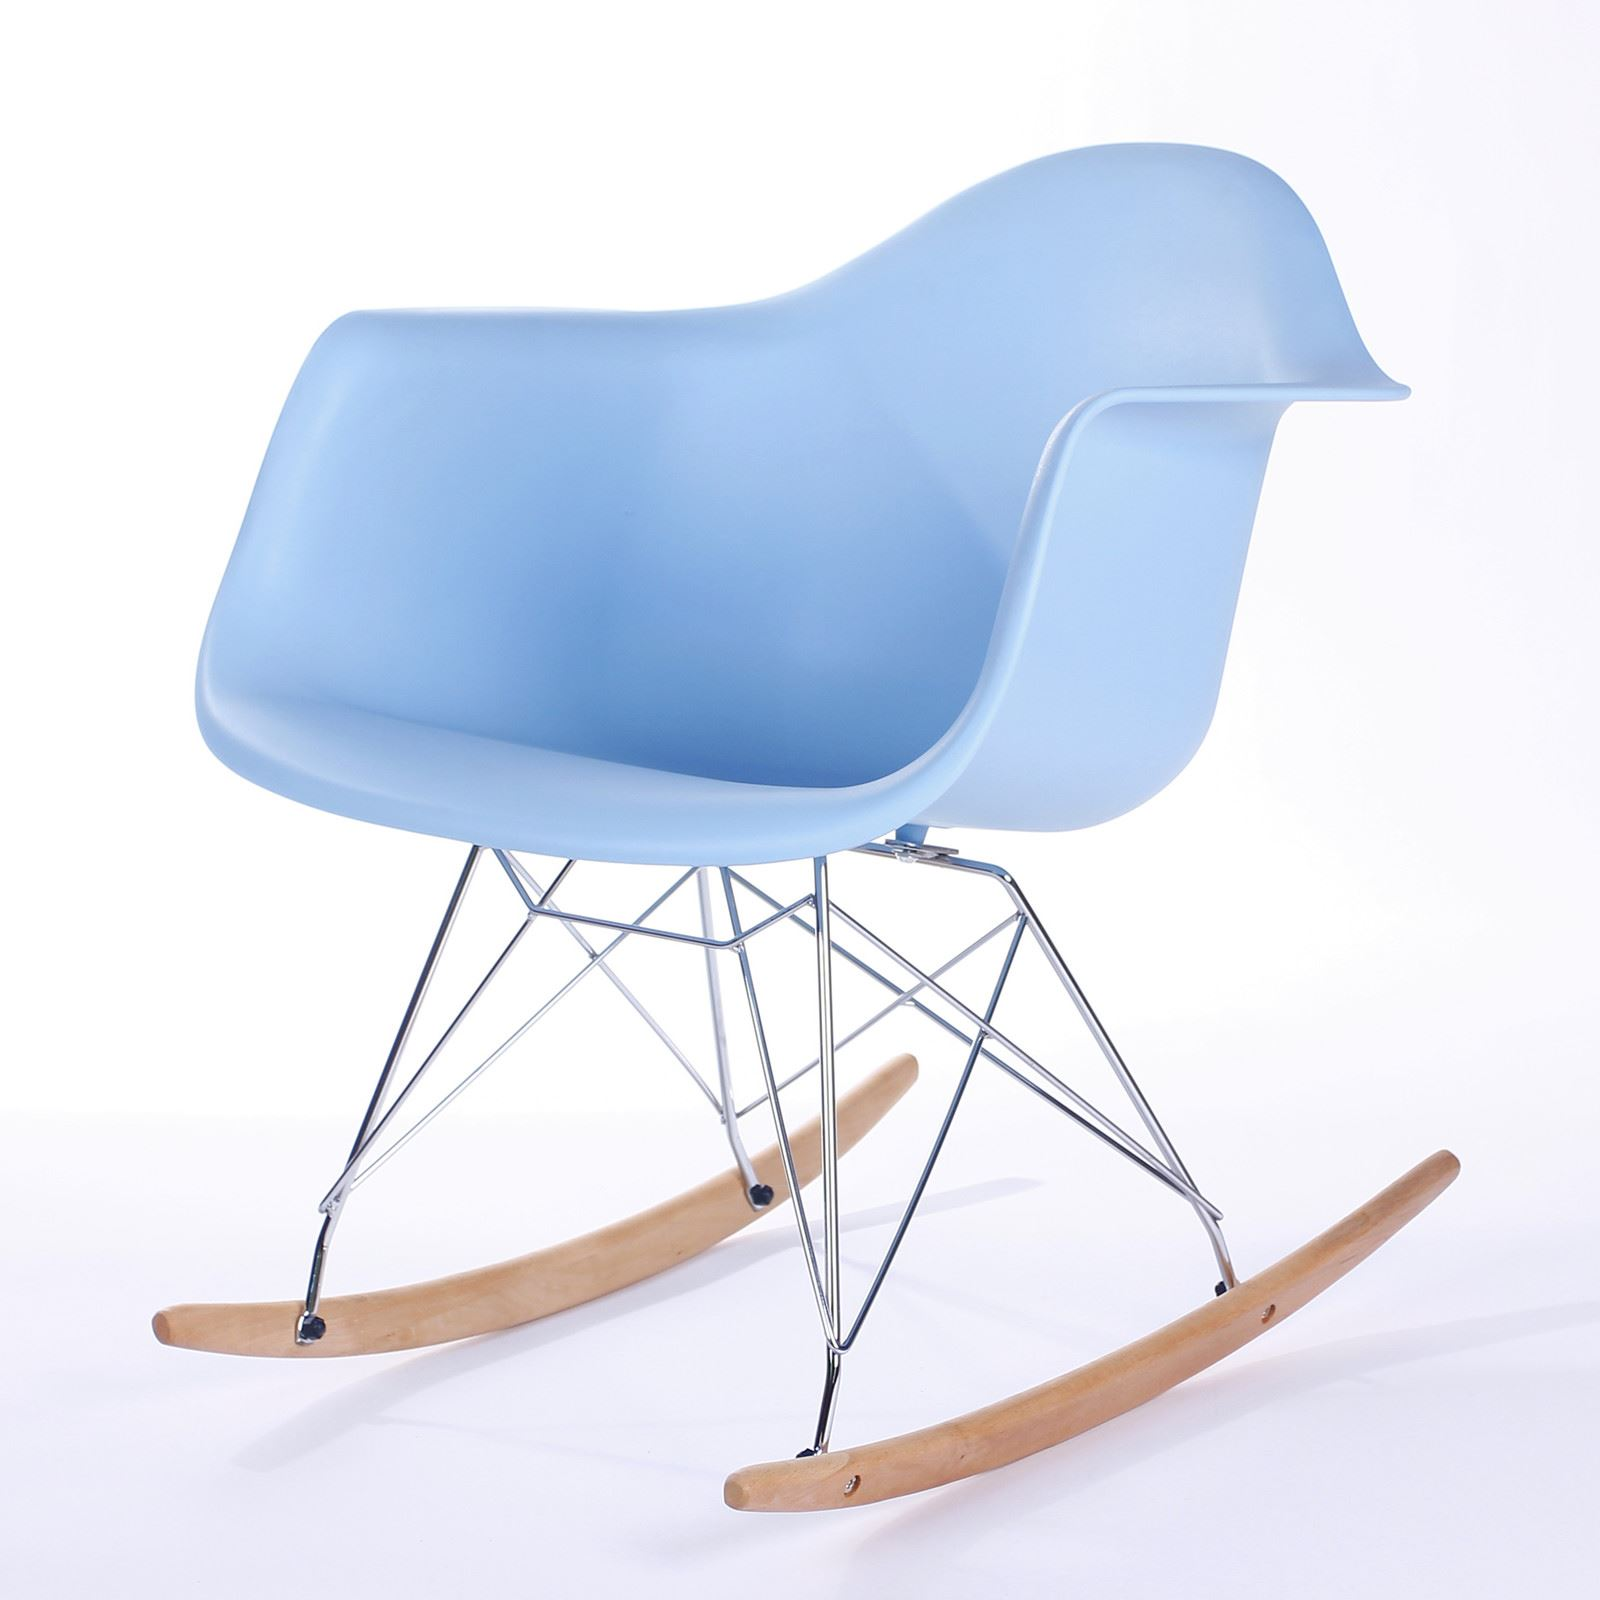 Eames Rocking Chair RAR Rocker Armchair Retro Lounge Nursery Baby